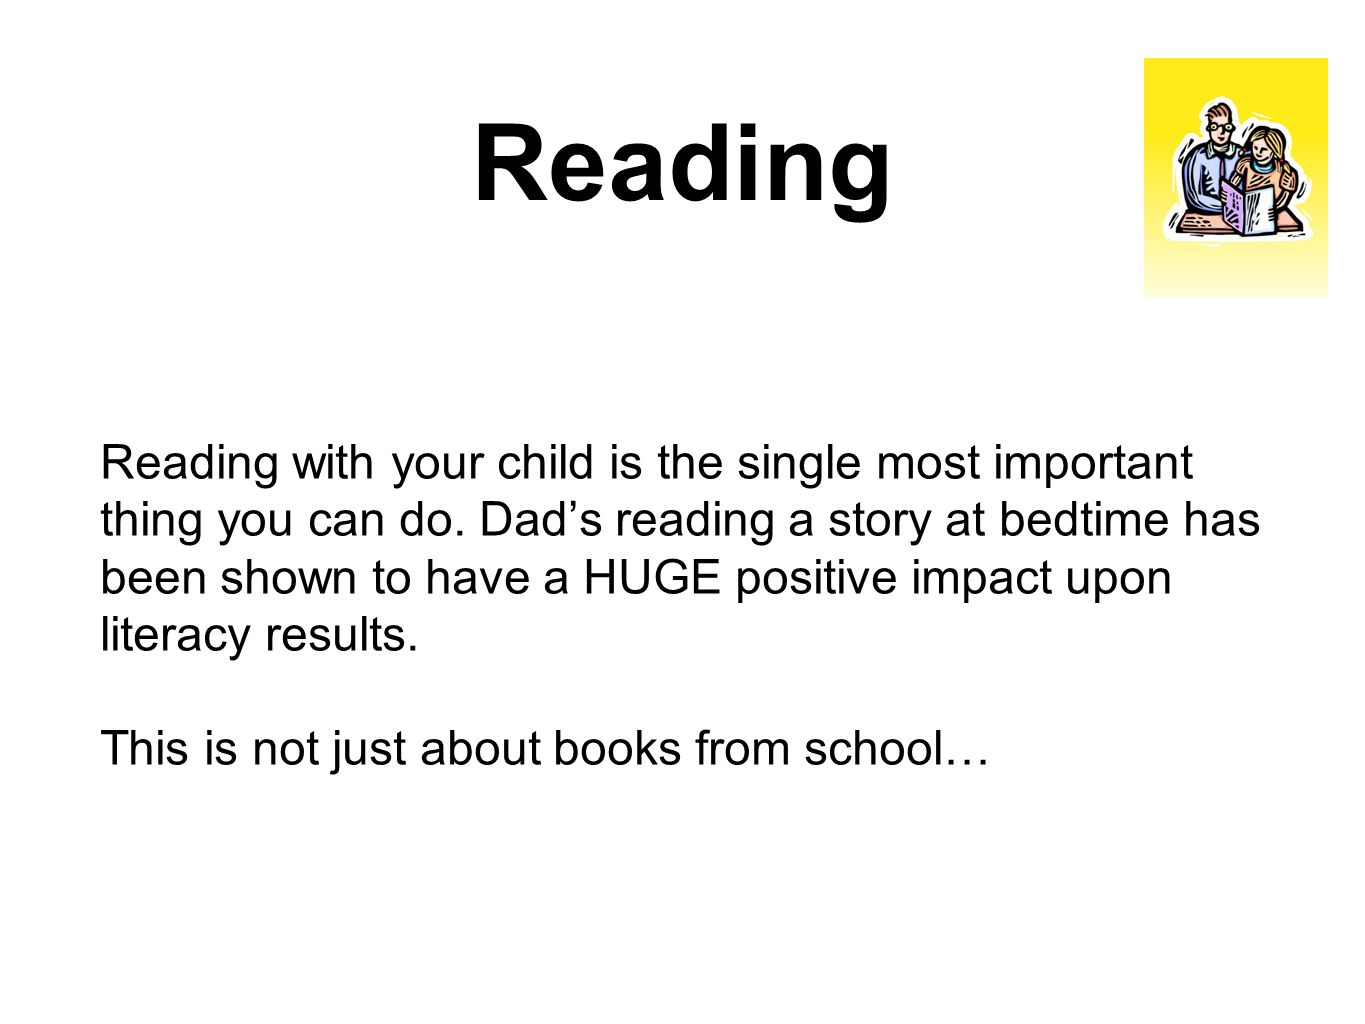 Reading Reading with your child is the single most important thing you can do.